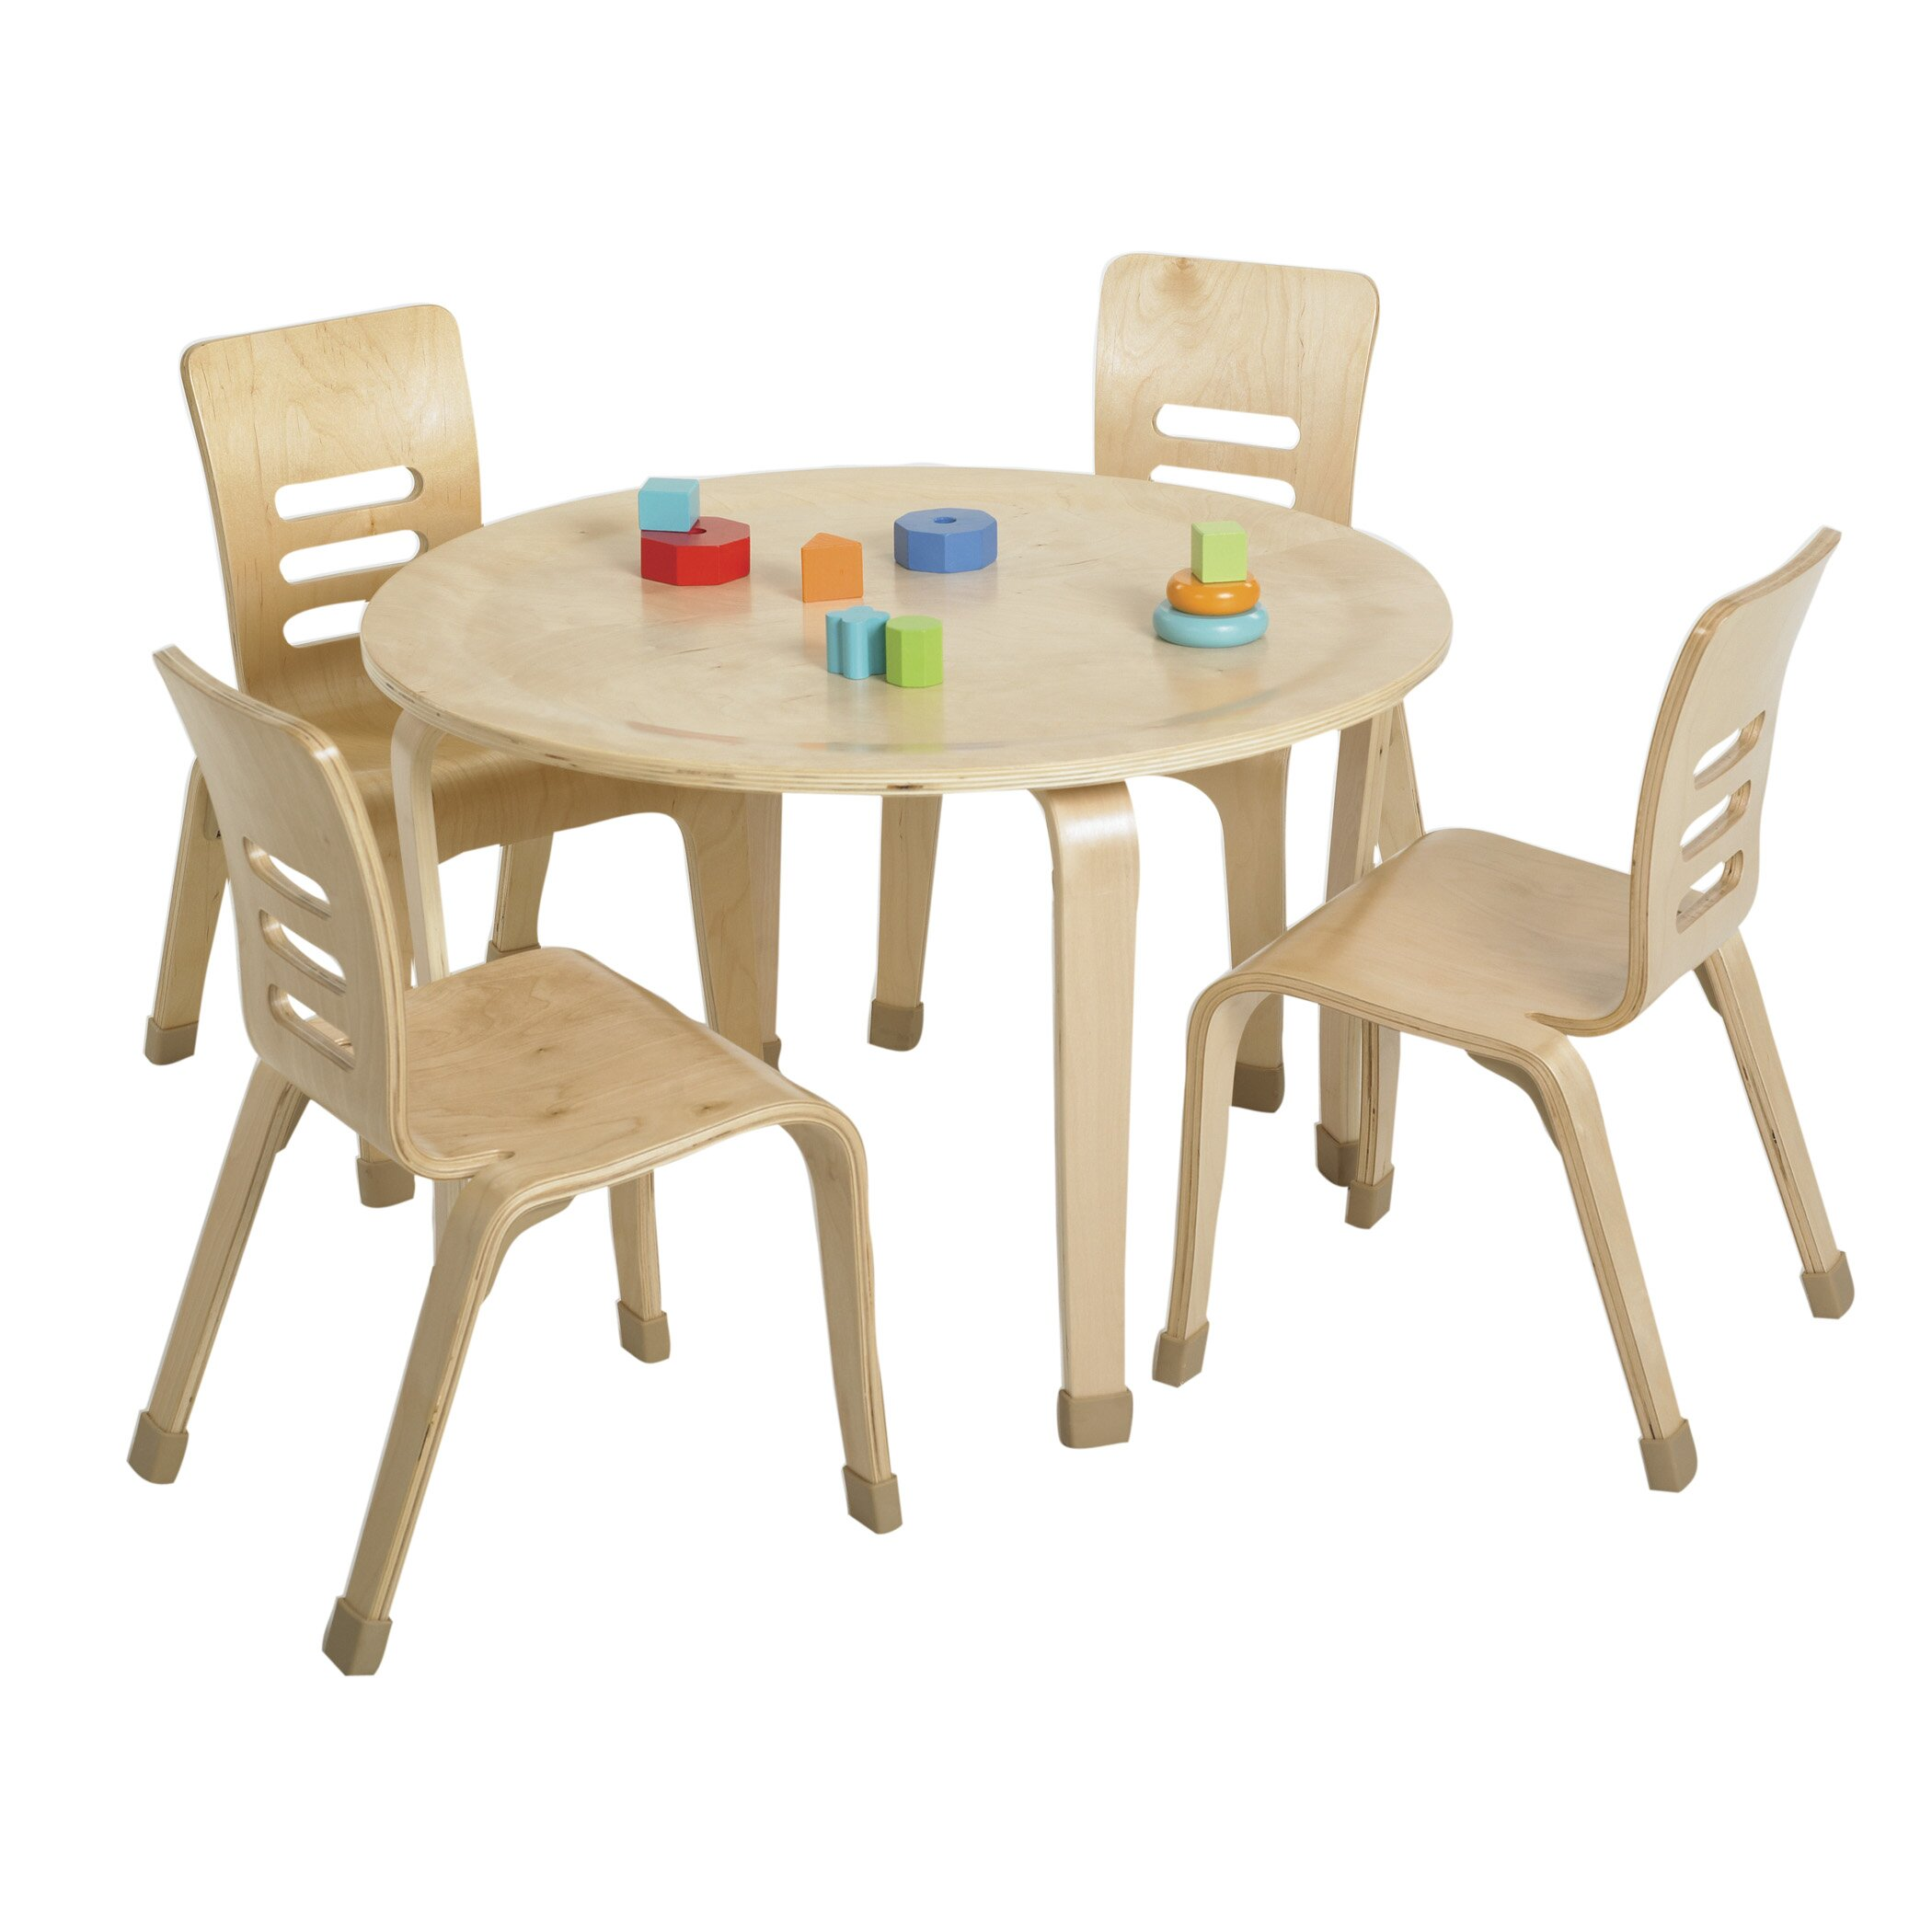 Ecr4kids ecr4kids 30 round activity table reviews for School furniture 4 less reviews